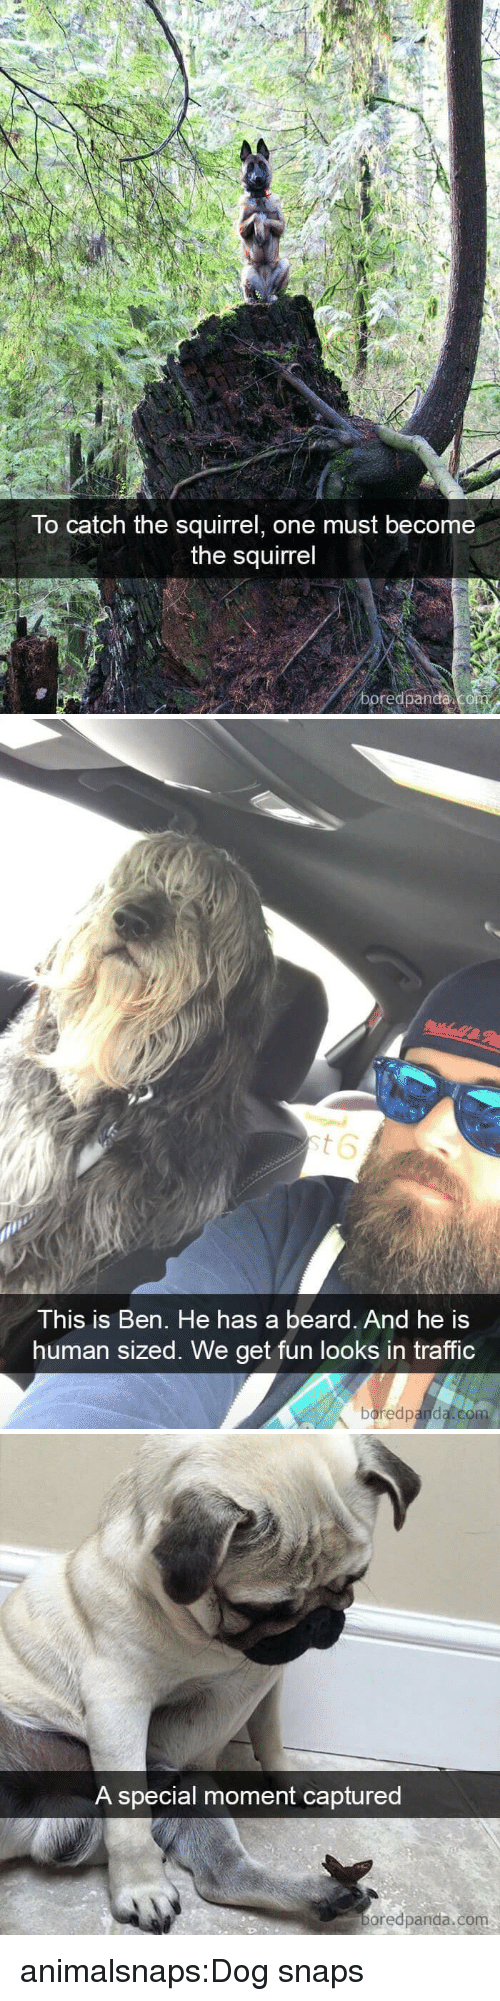 Beard, Target, and Traffic: To catch the squirrel, one must become  the squirrel  boredpanda   This is Ben. He has a beard. And he is  human sized. We get fun looks in traffic  boredpanda.co   A special moment captured  oredpanda.com animalsnaps:Dog snaps